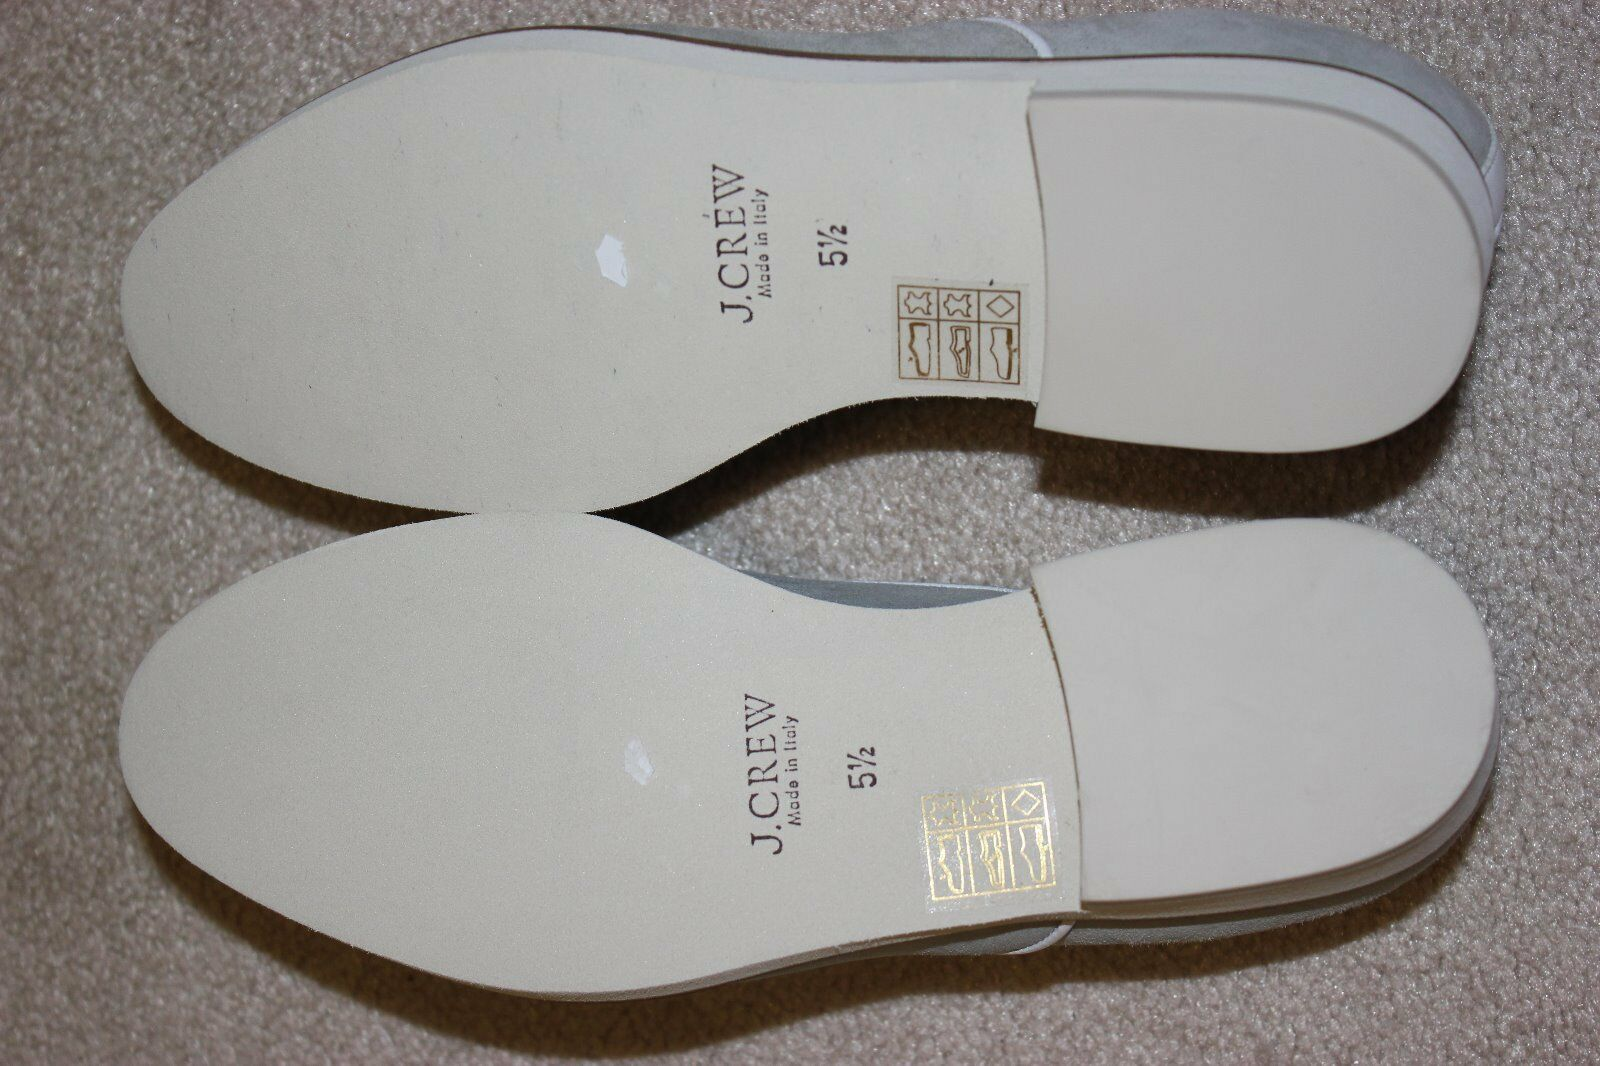 J Crew Suade Piped Mercer Loafer Damenschuhe 5.5 B7952 NEW B7952 5.5  Retails 250 a8c88c